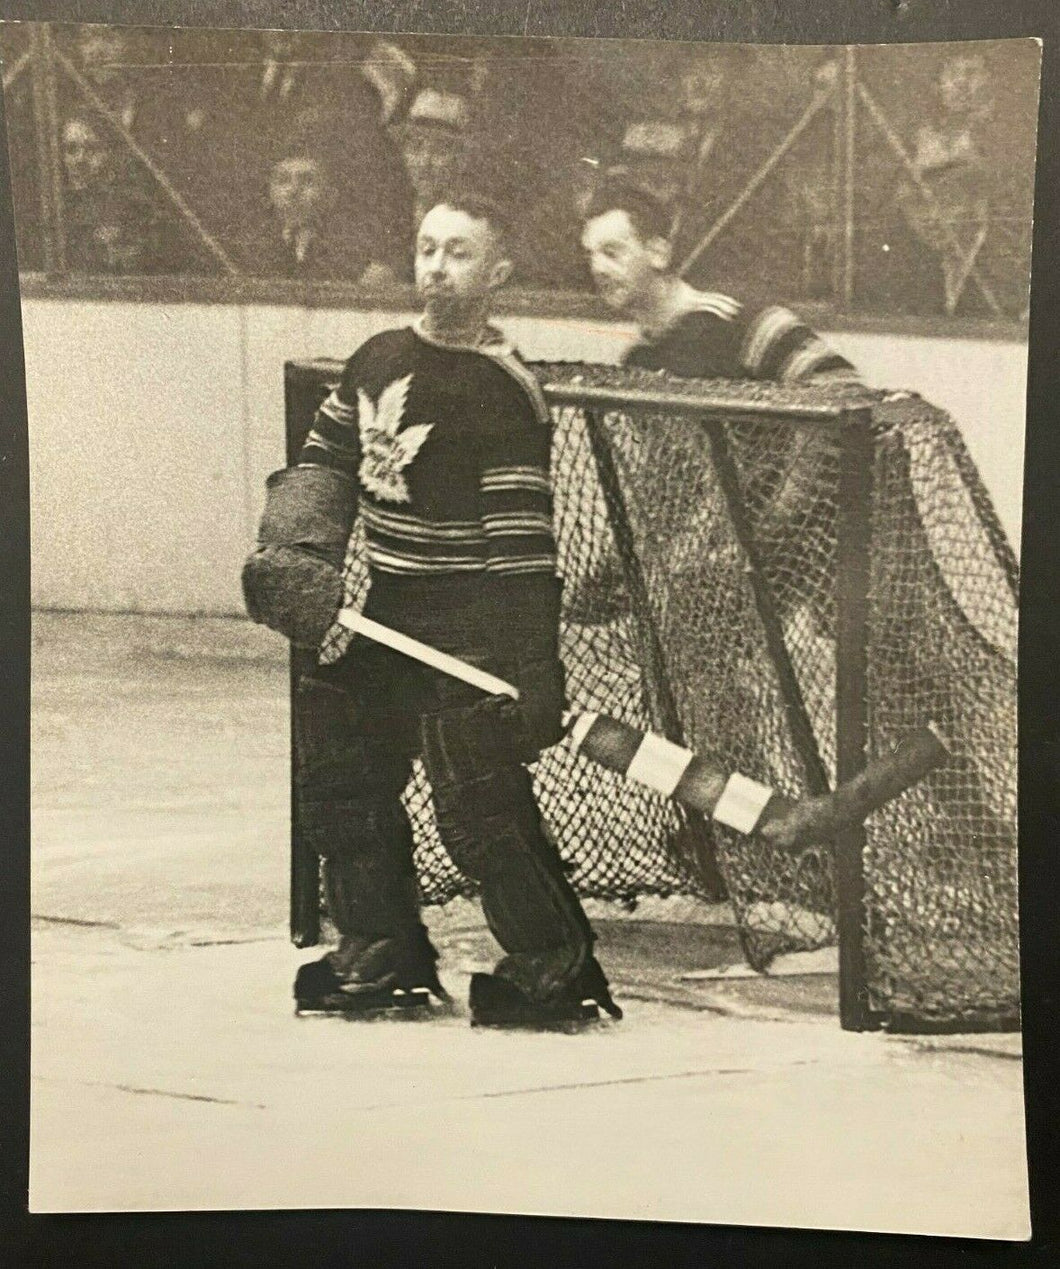 1935 Vintage NHL Type 1 Photo Toronto Maple Leafs Hockey HOF George Hainsworth